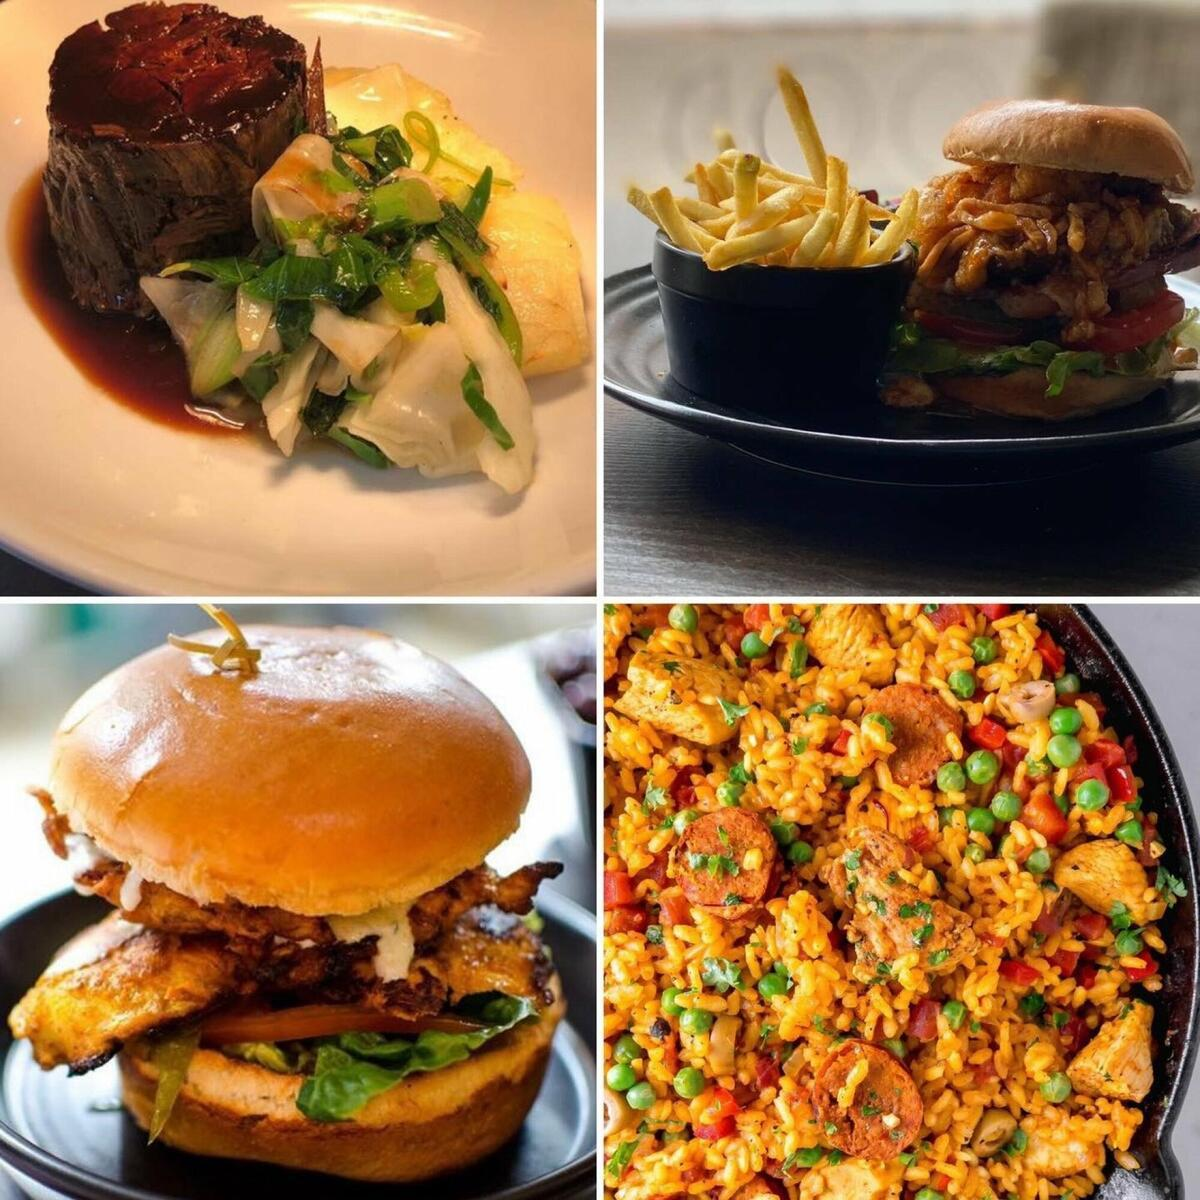 Paella, burgers and more